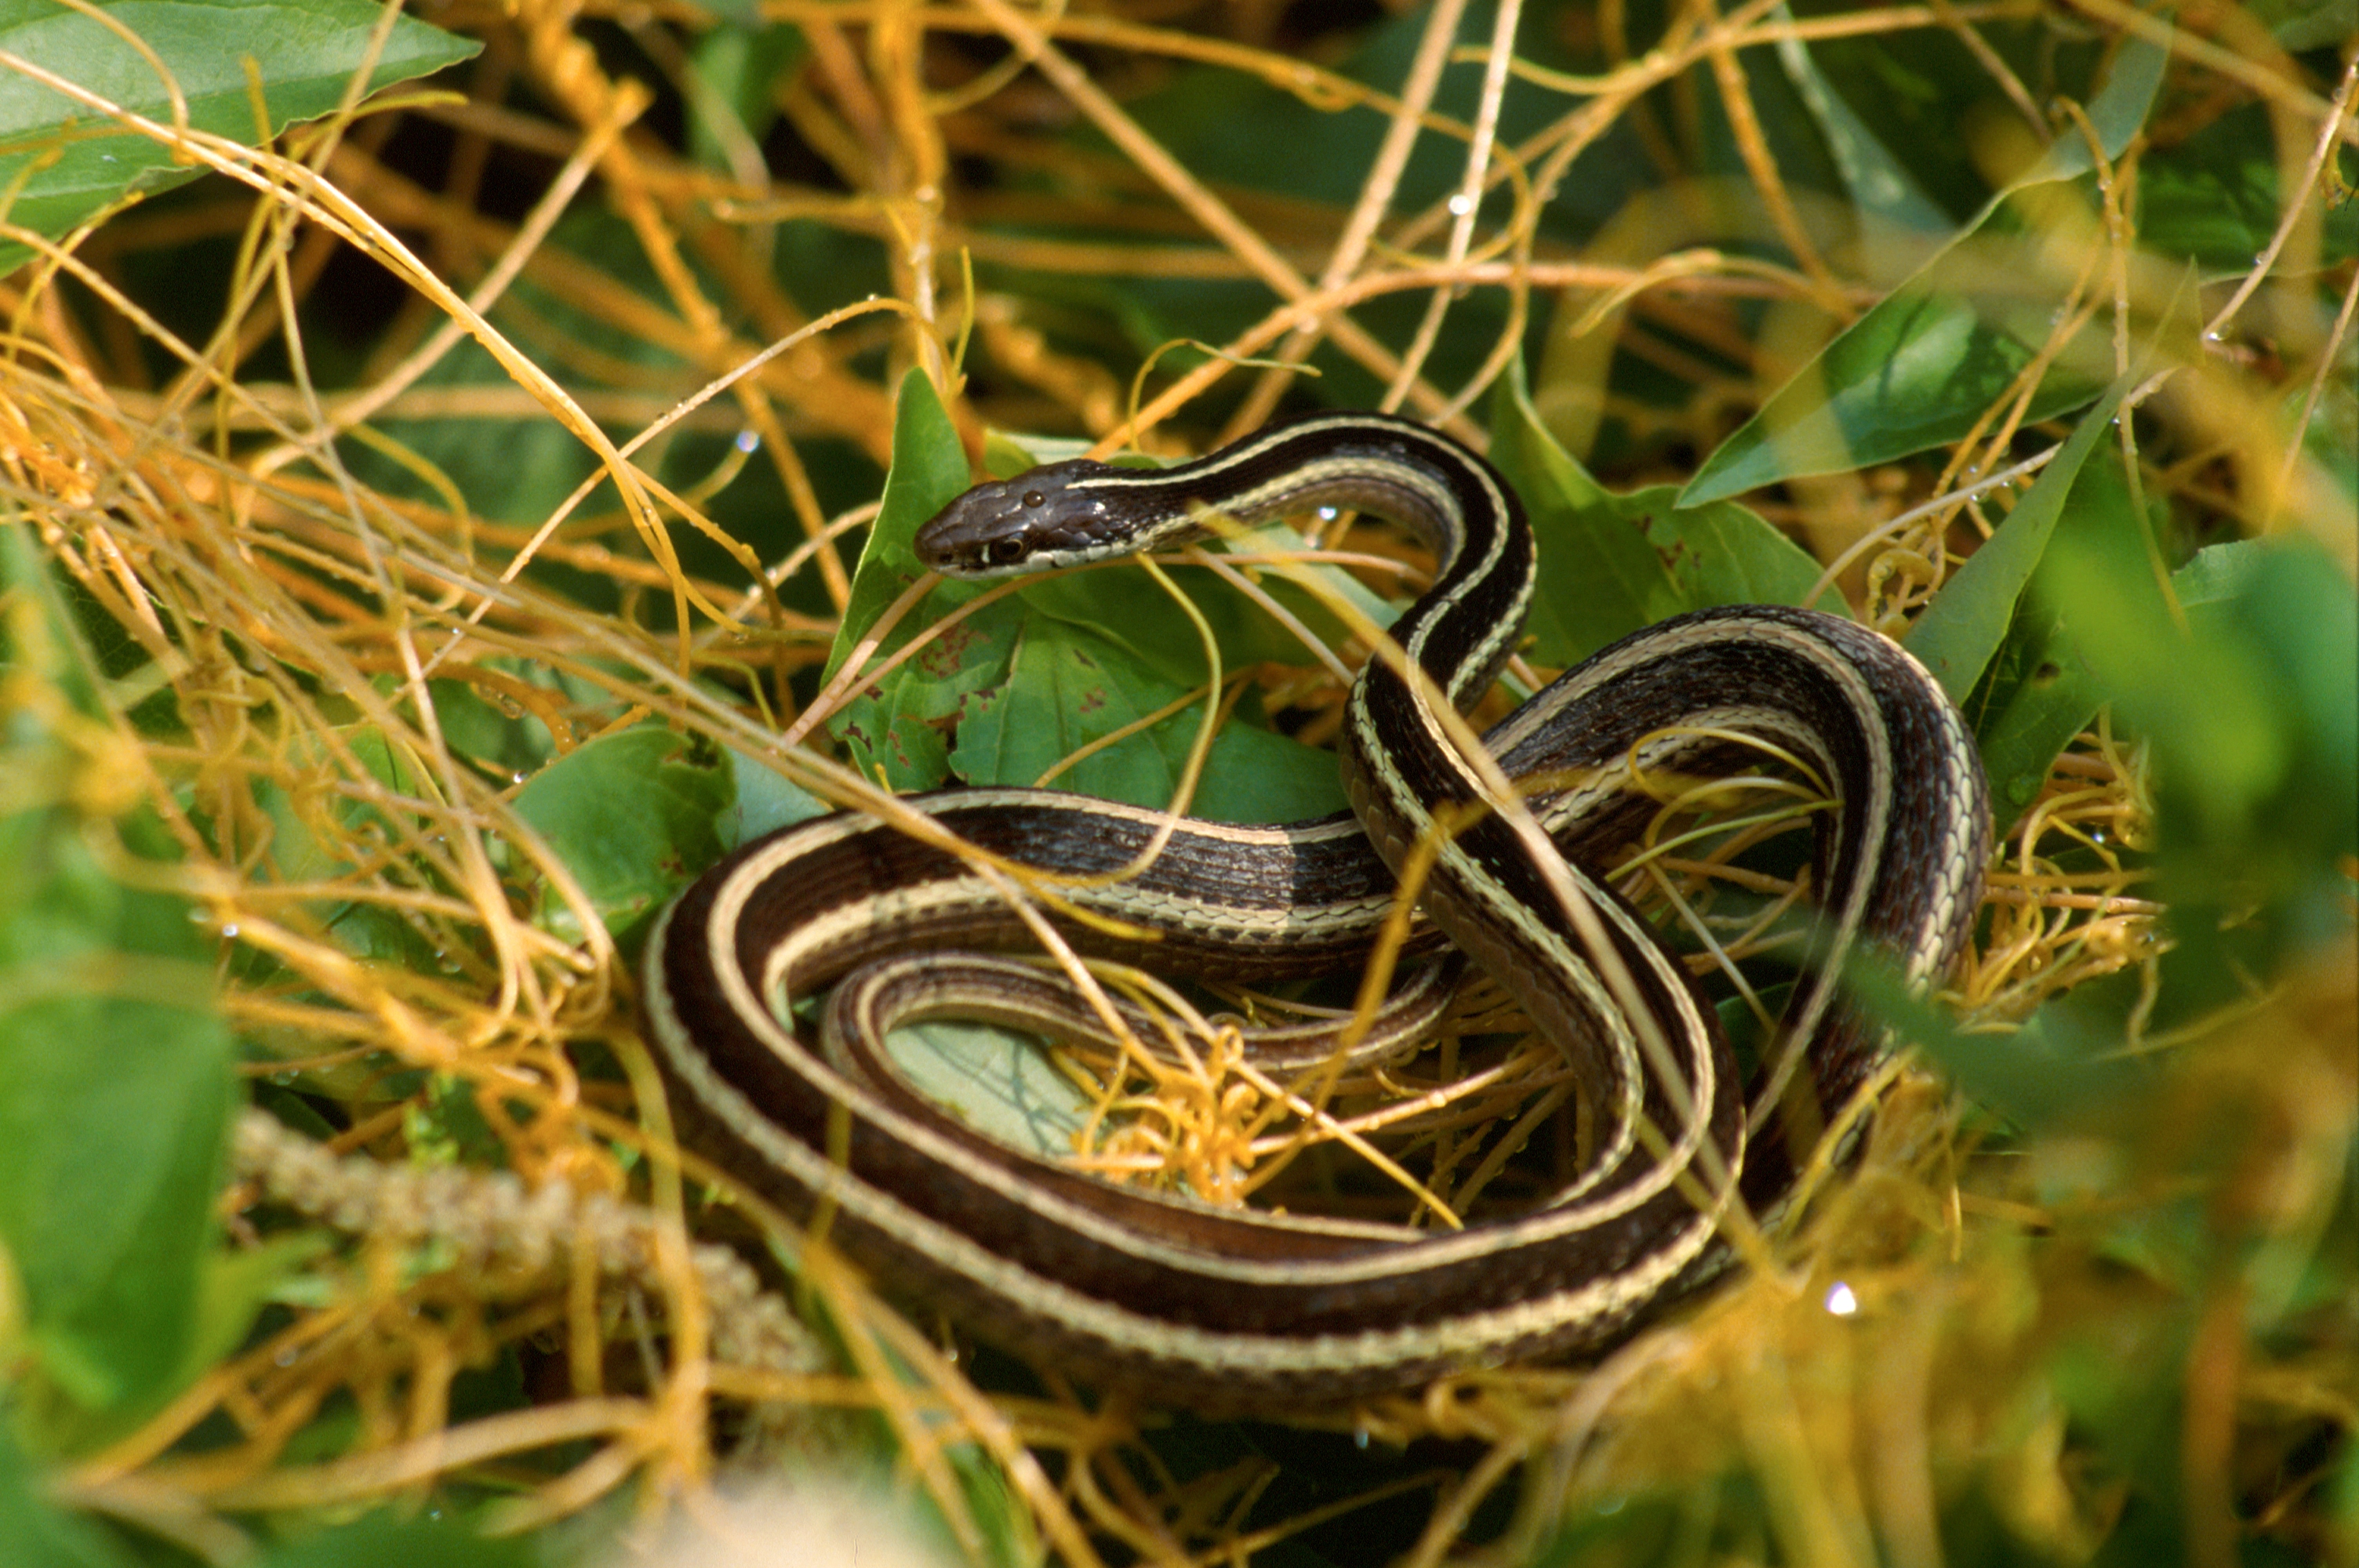 Eastern Ribbon Snake Facts and Pictures | Reptile Fact